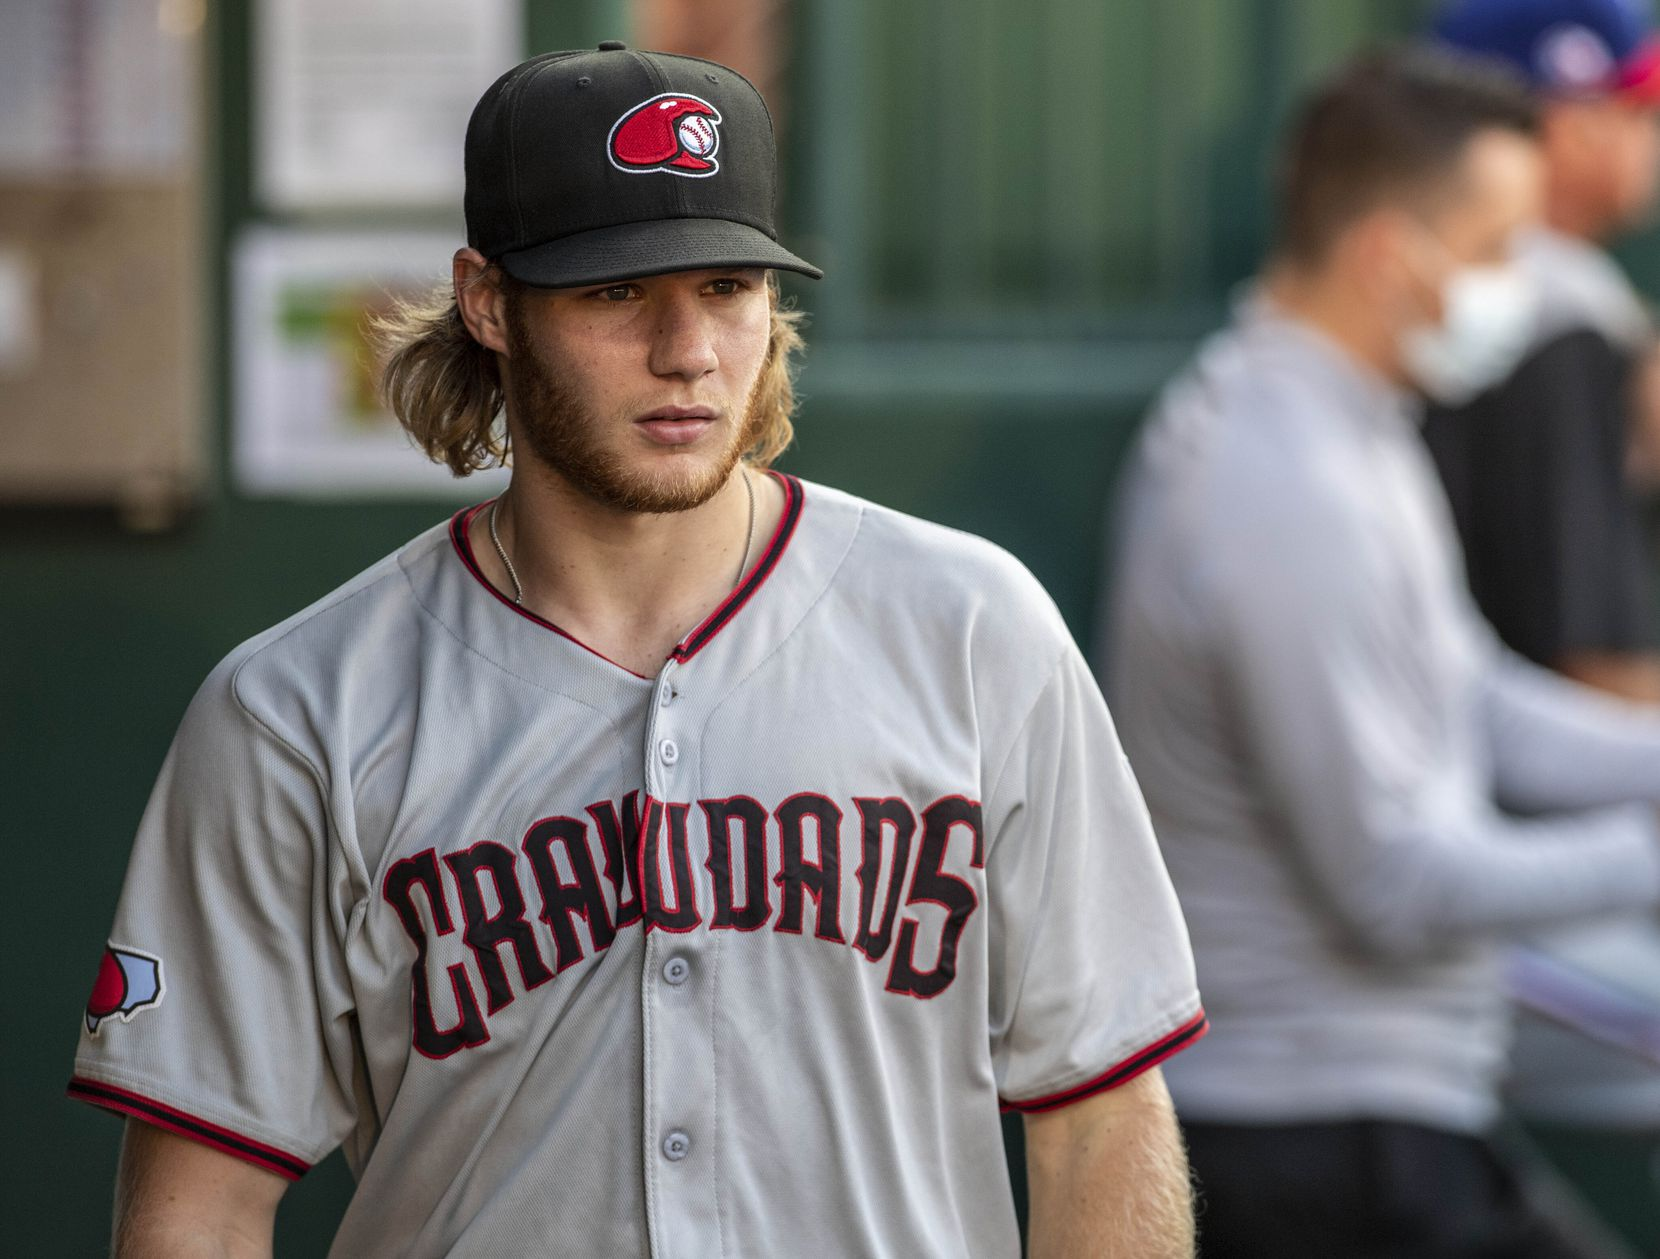 Hickory Crawdad's pitcher Zak Kent (11) walks in the dugout during the game with the Greensboro Grasshoppers at First National Bank Field on Thursday, August 5, 2021 in Greensboro, N.C.